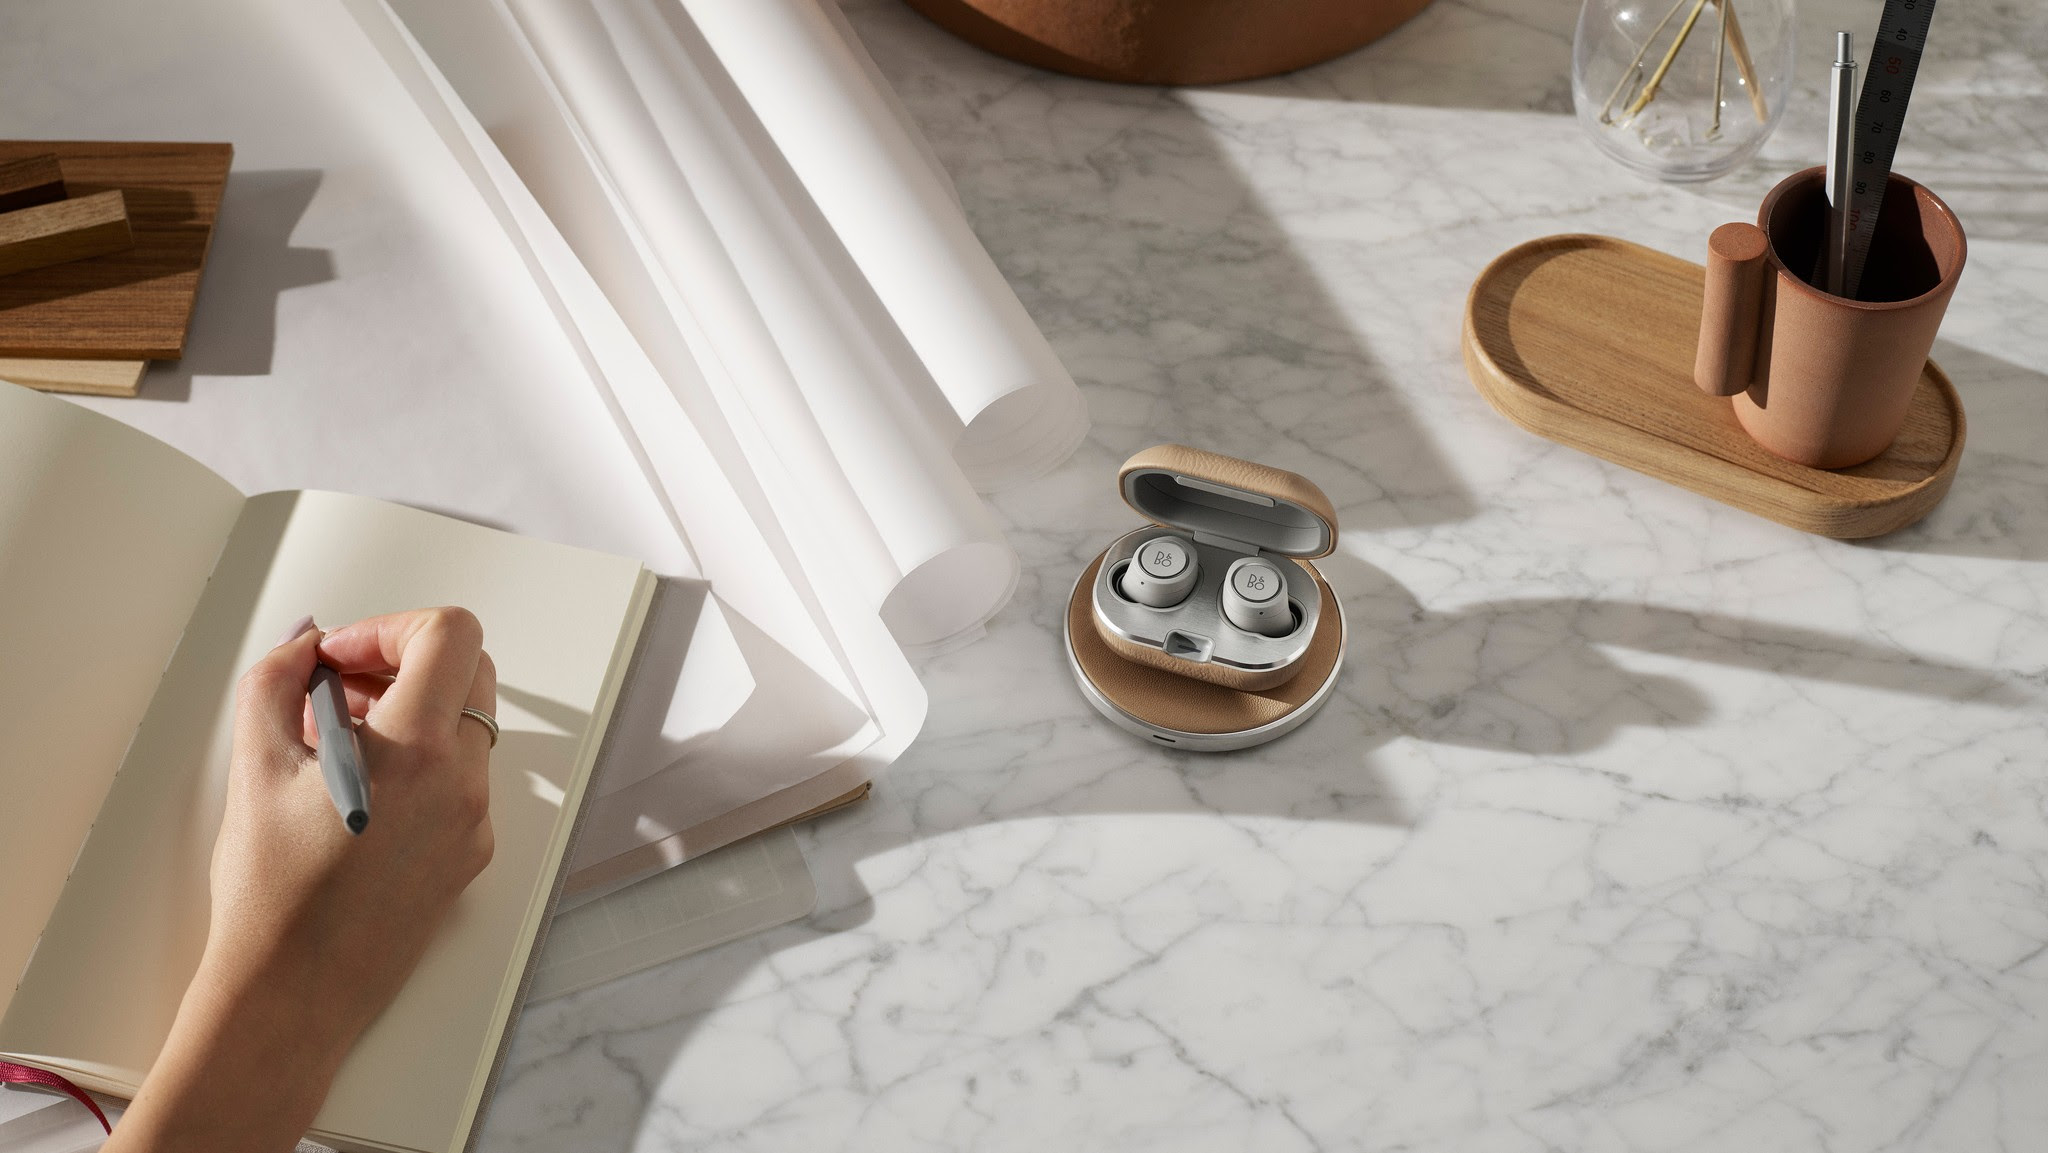 384742002be Beoplay E8 earbuds to get wireless charging upgrade this Valentine's ...